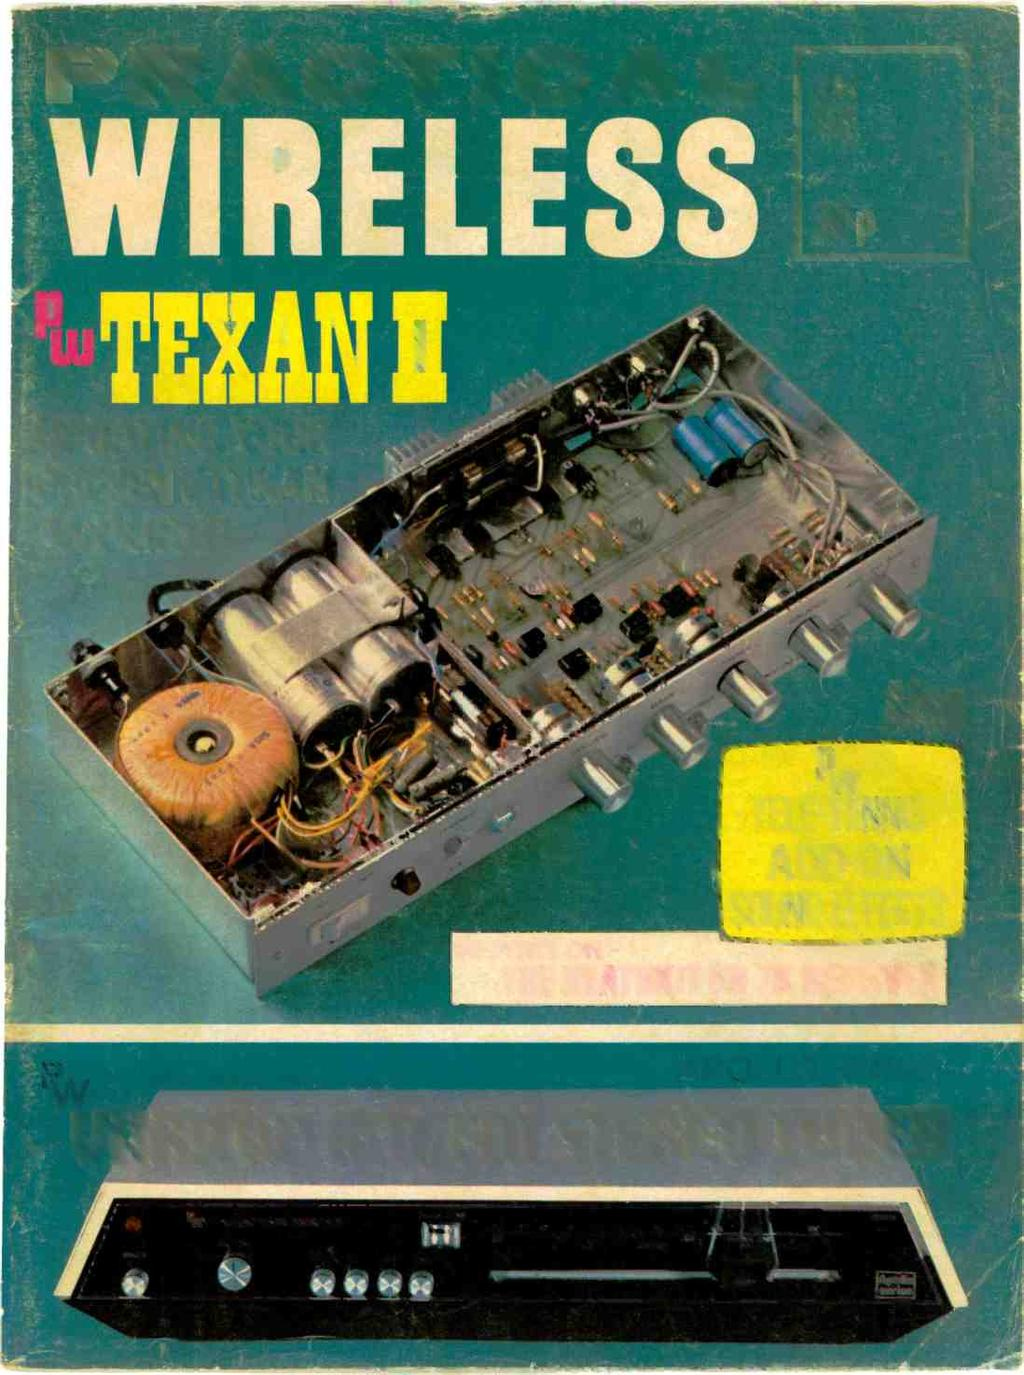 July P Updating Your Present Texan Amplifier Tele Tennis